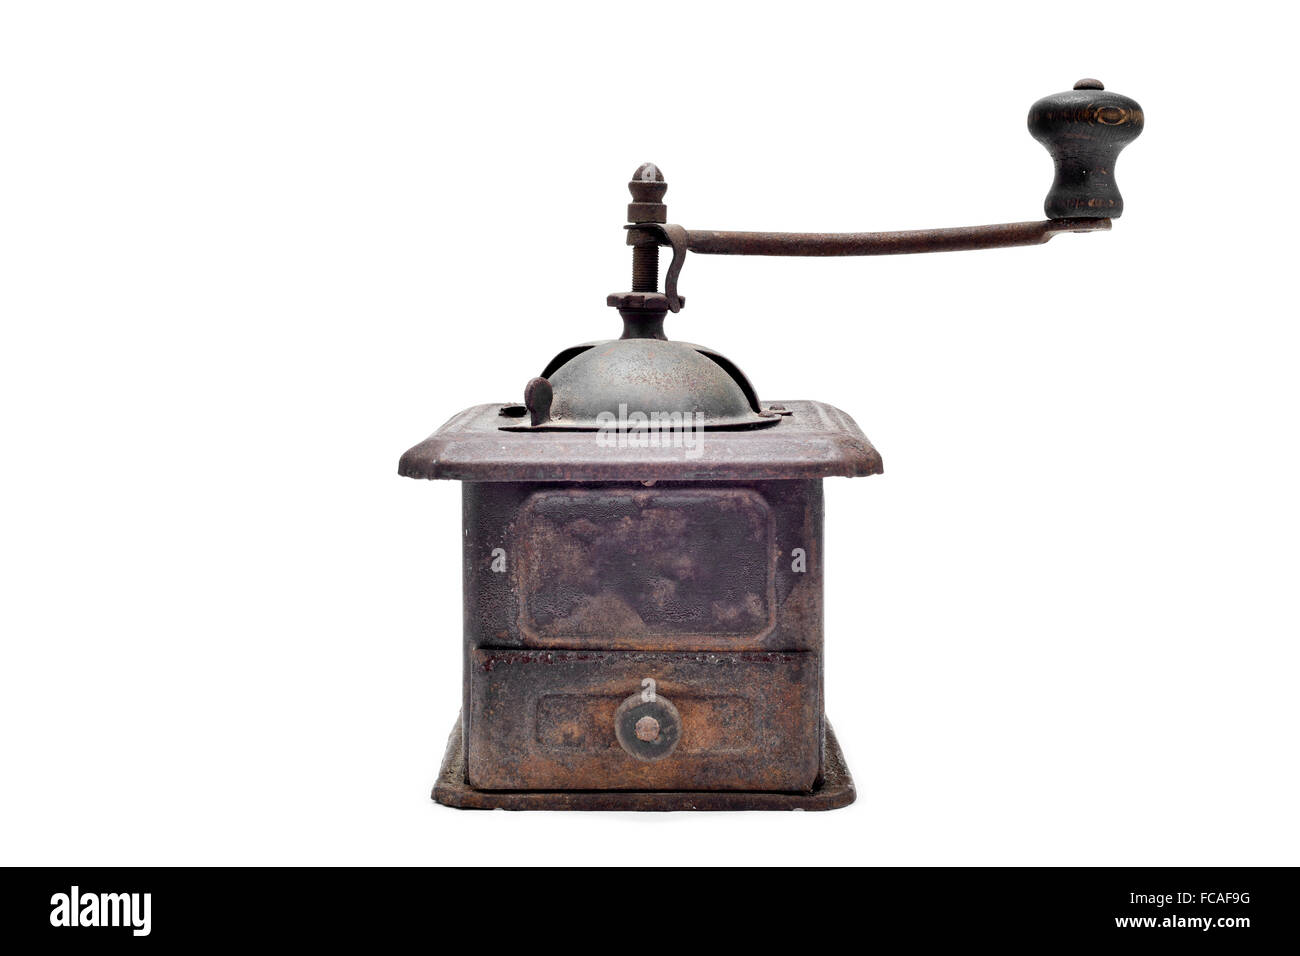 an old and rusty manual burr-mill coffee grinder on a white background - Stock Image